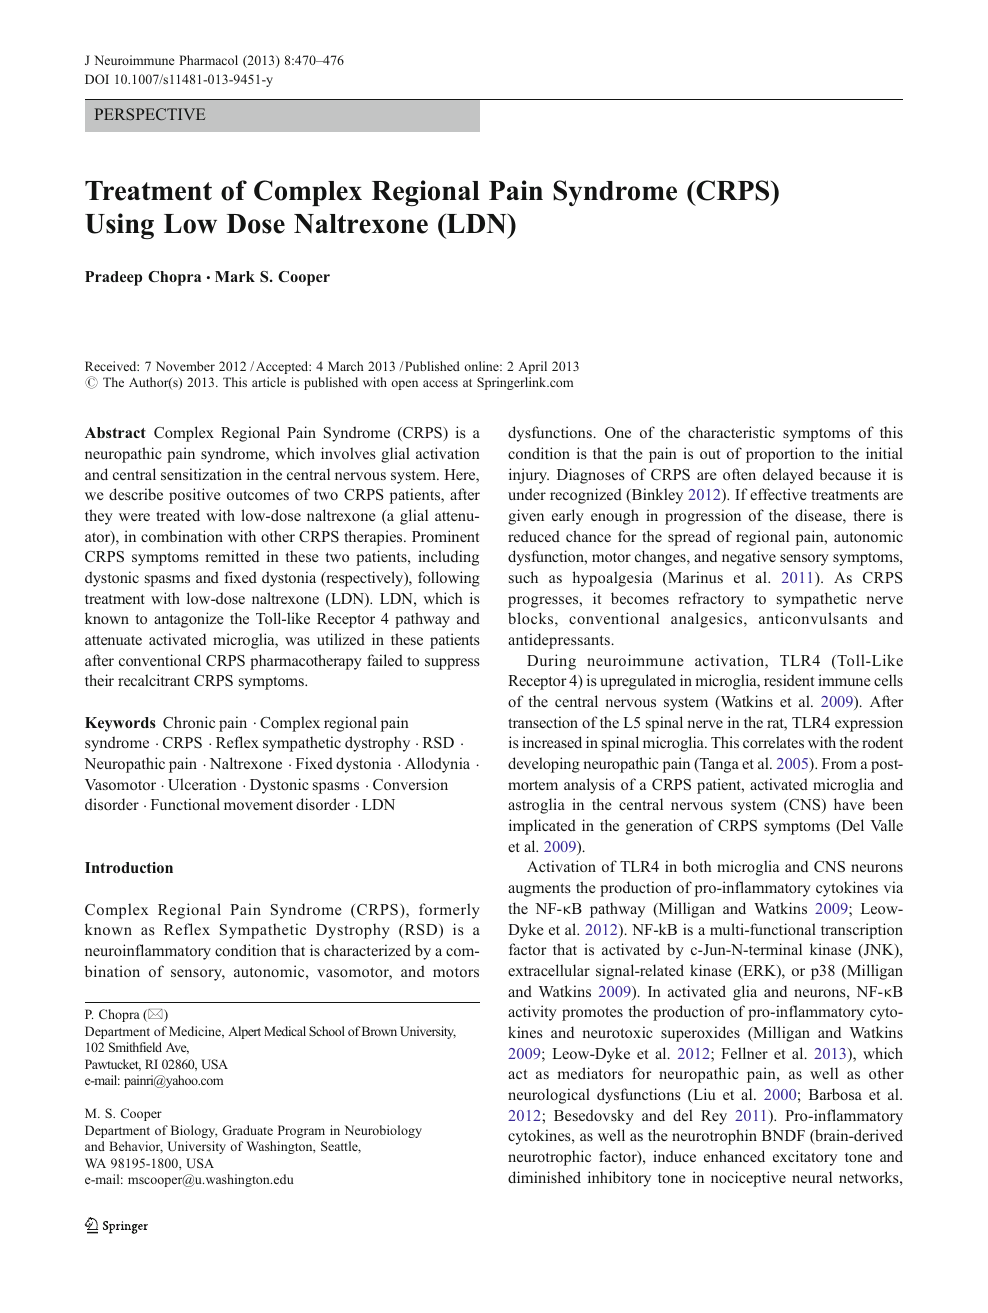 Treatment of Complex Regional Pain Syndrome (CRPS) Using Low